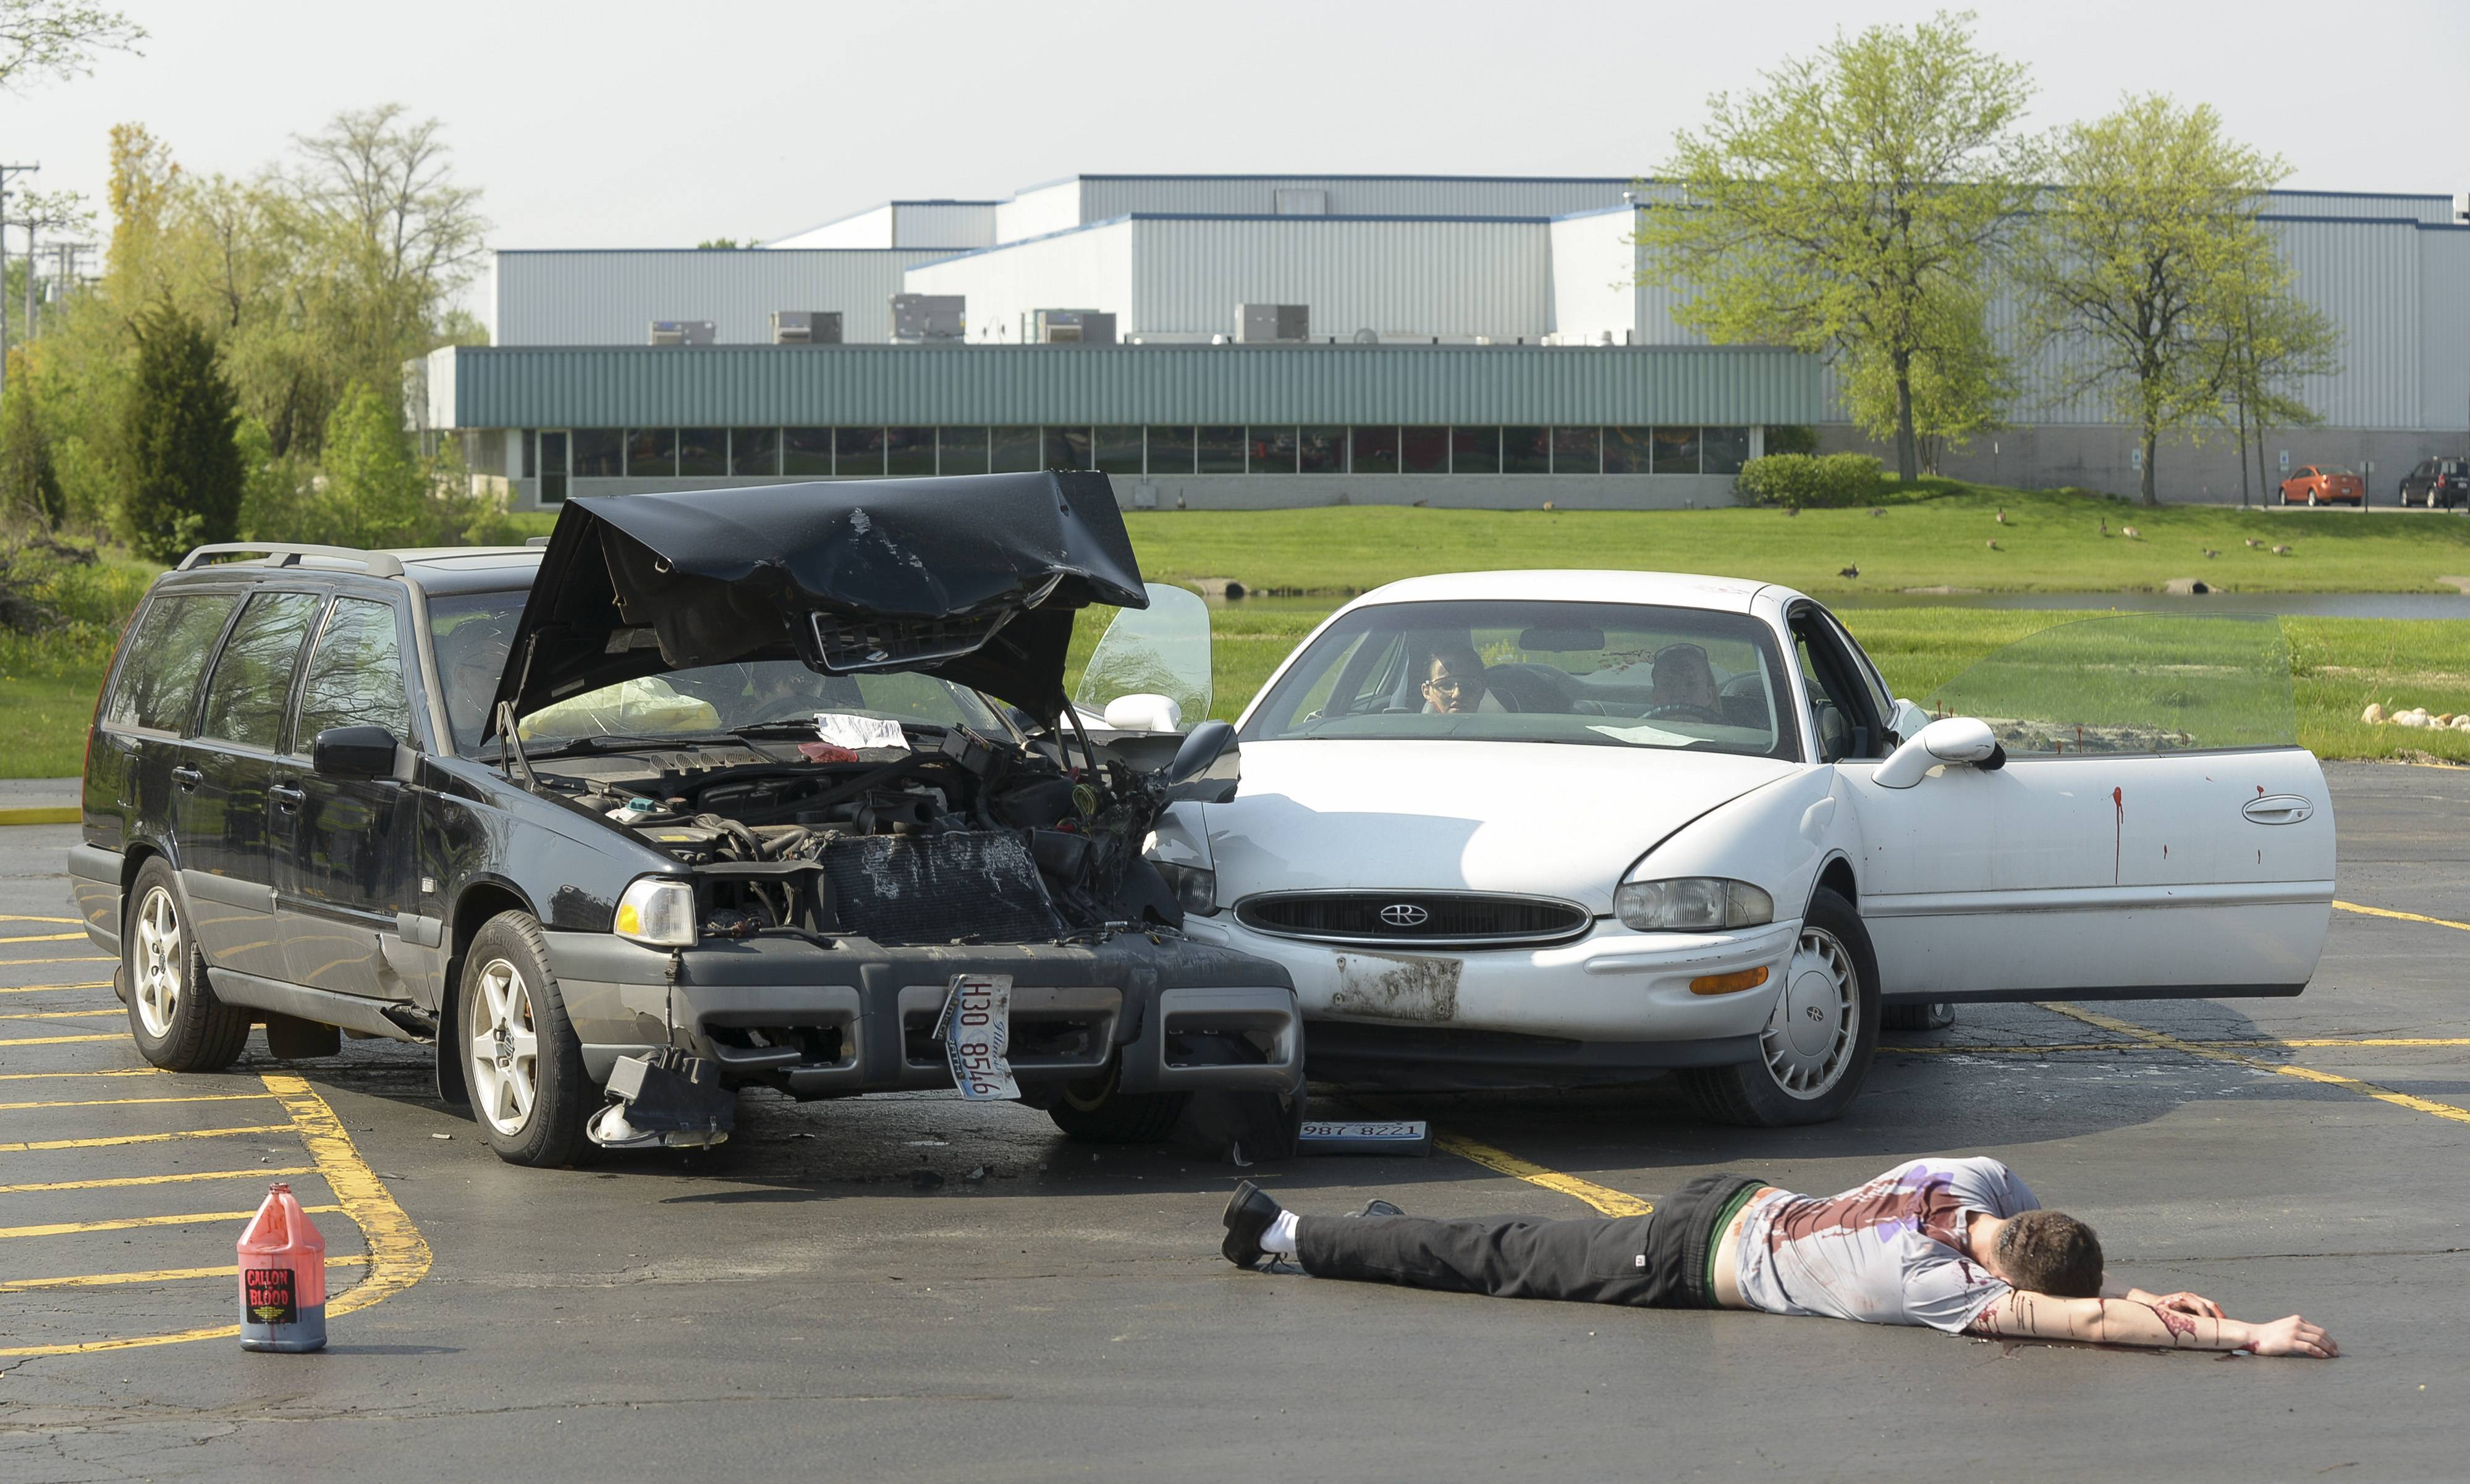 High school students studying to become emergency medical technicians got some hands-on training Tuesday when responding to a mock accident at the Technology Center of DuPage in Addison.